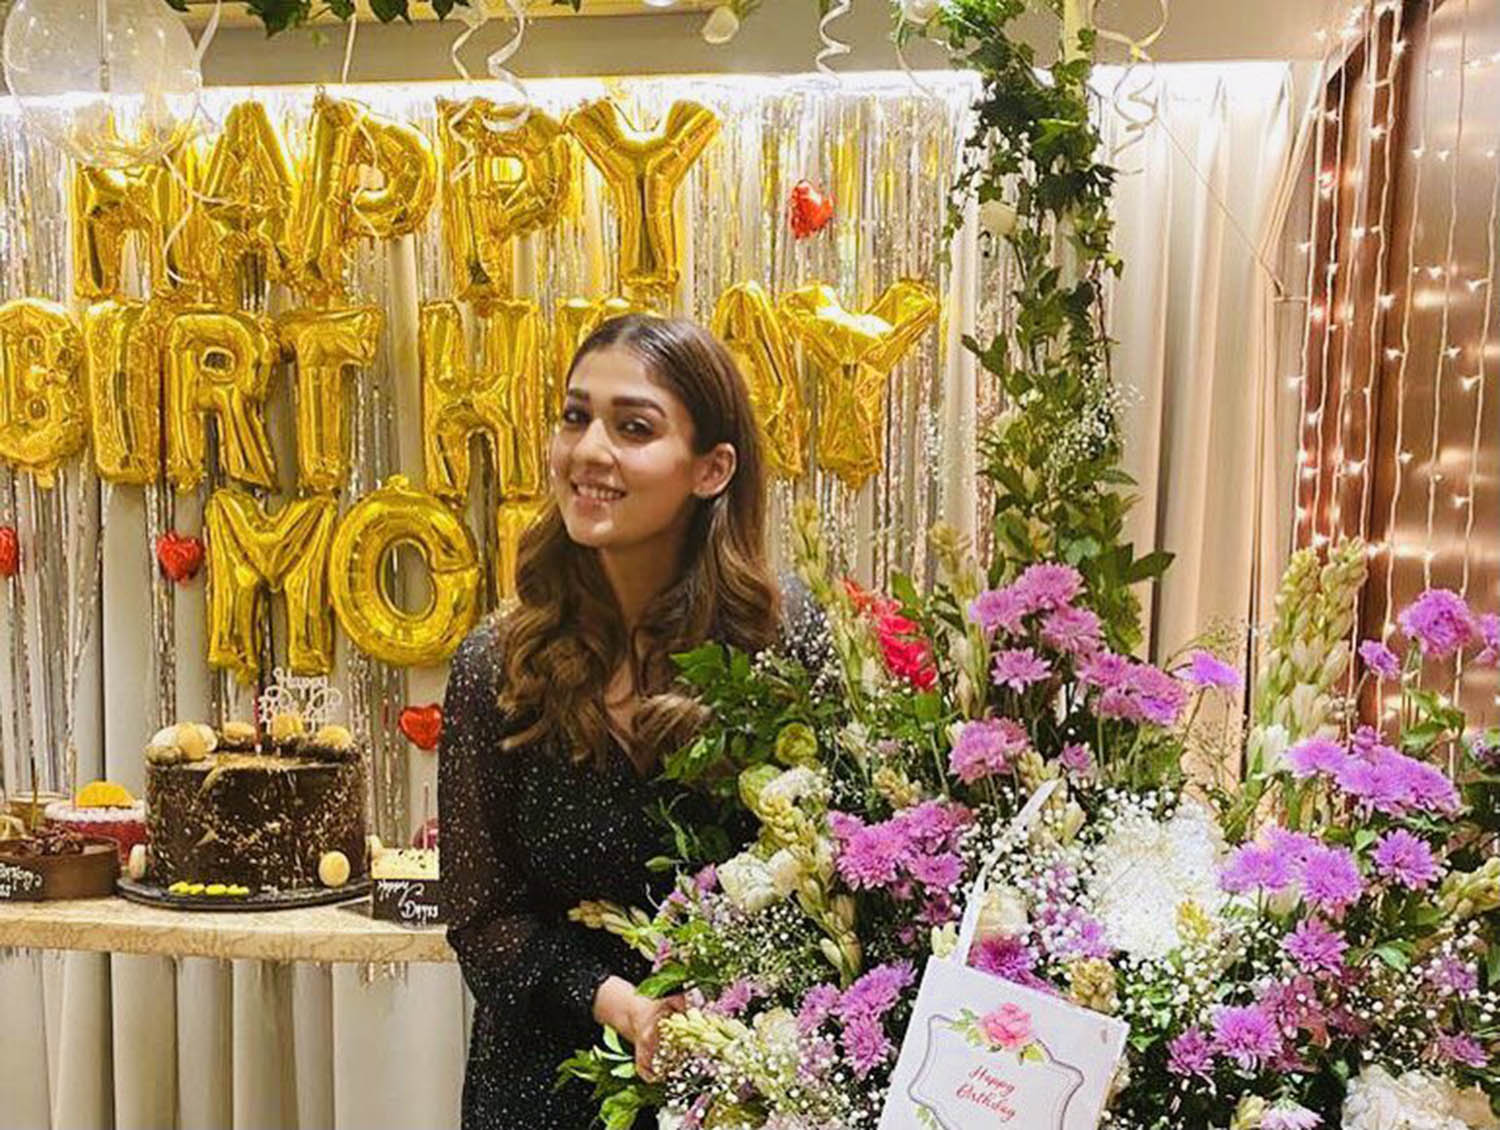 Nayanthara recent images,Nayanthara latest news,Nayanthara 36th birthday celebration stills,Nayanthara's birthday celebration photos,Nayanthara birthday celebration pics